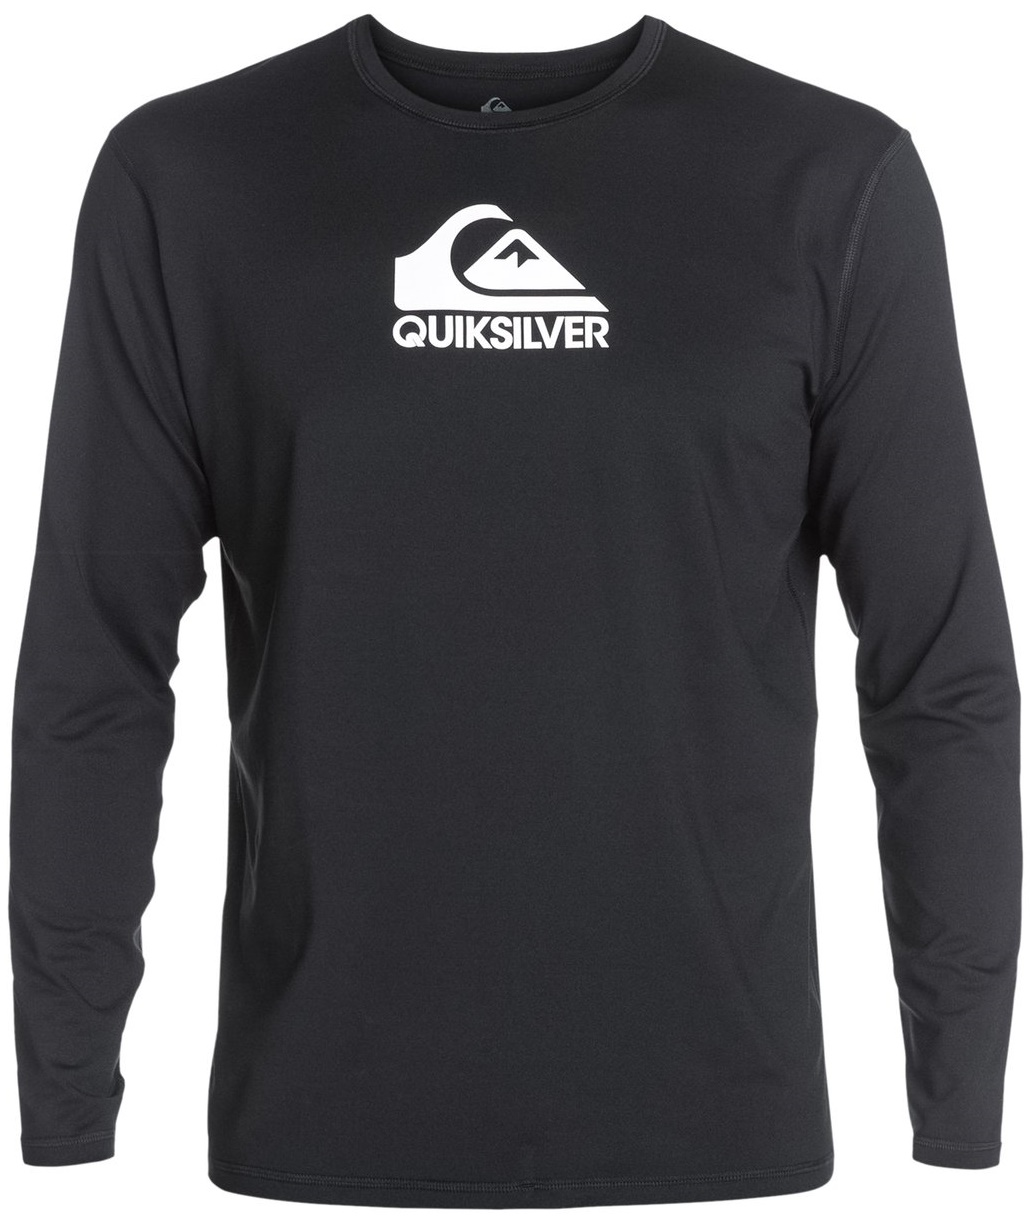 Quiksilver Men's Rashguard Long Sleeve Loose Fit  Solid Streak - Black